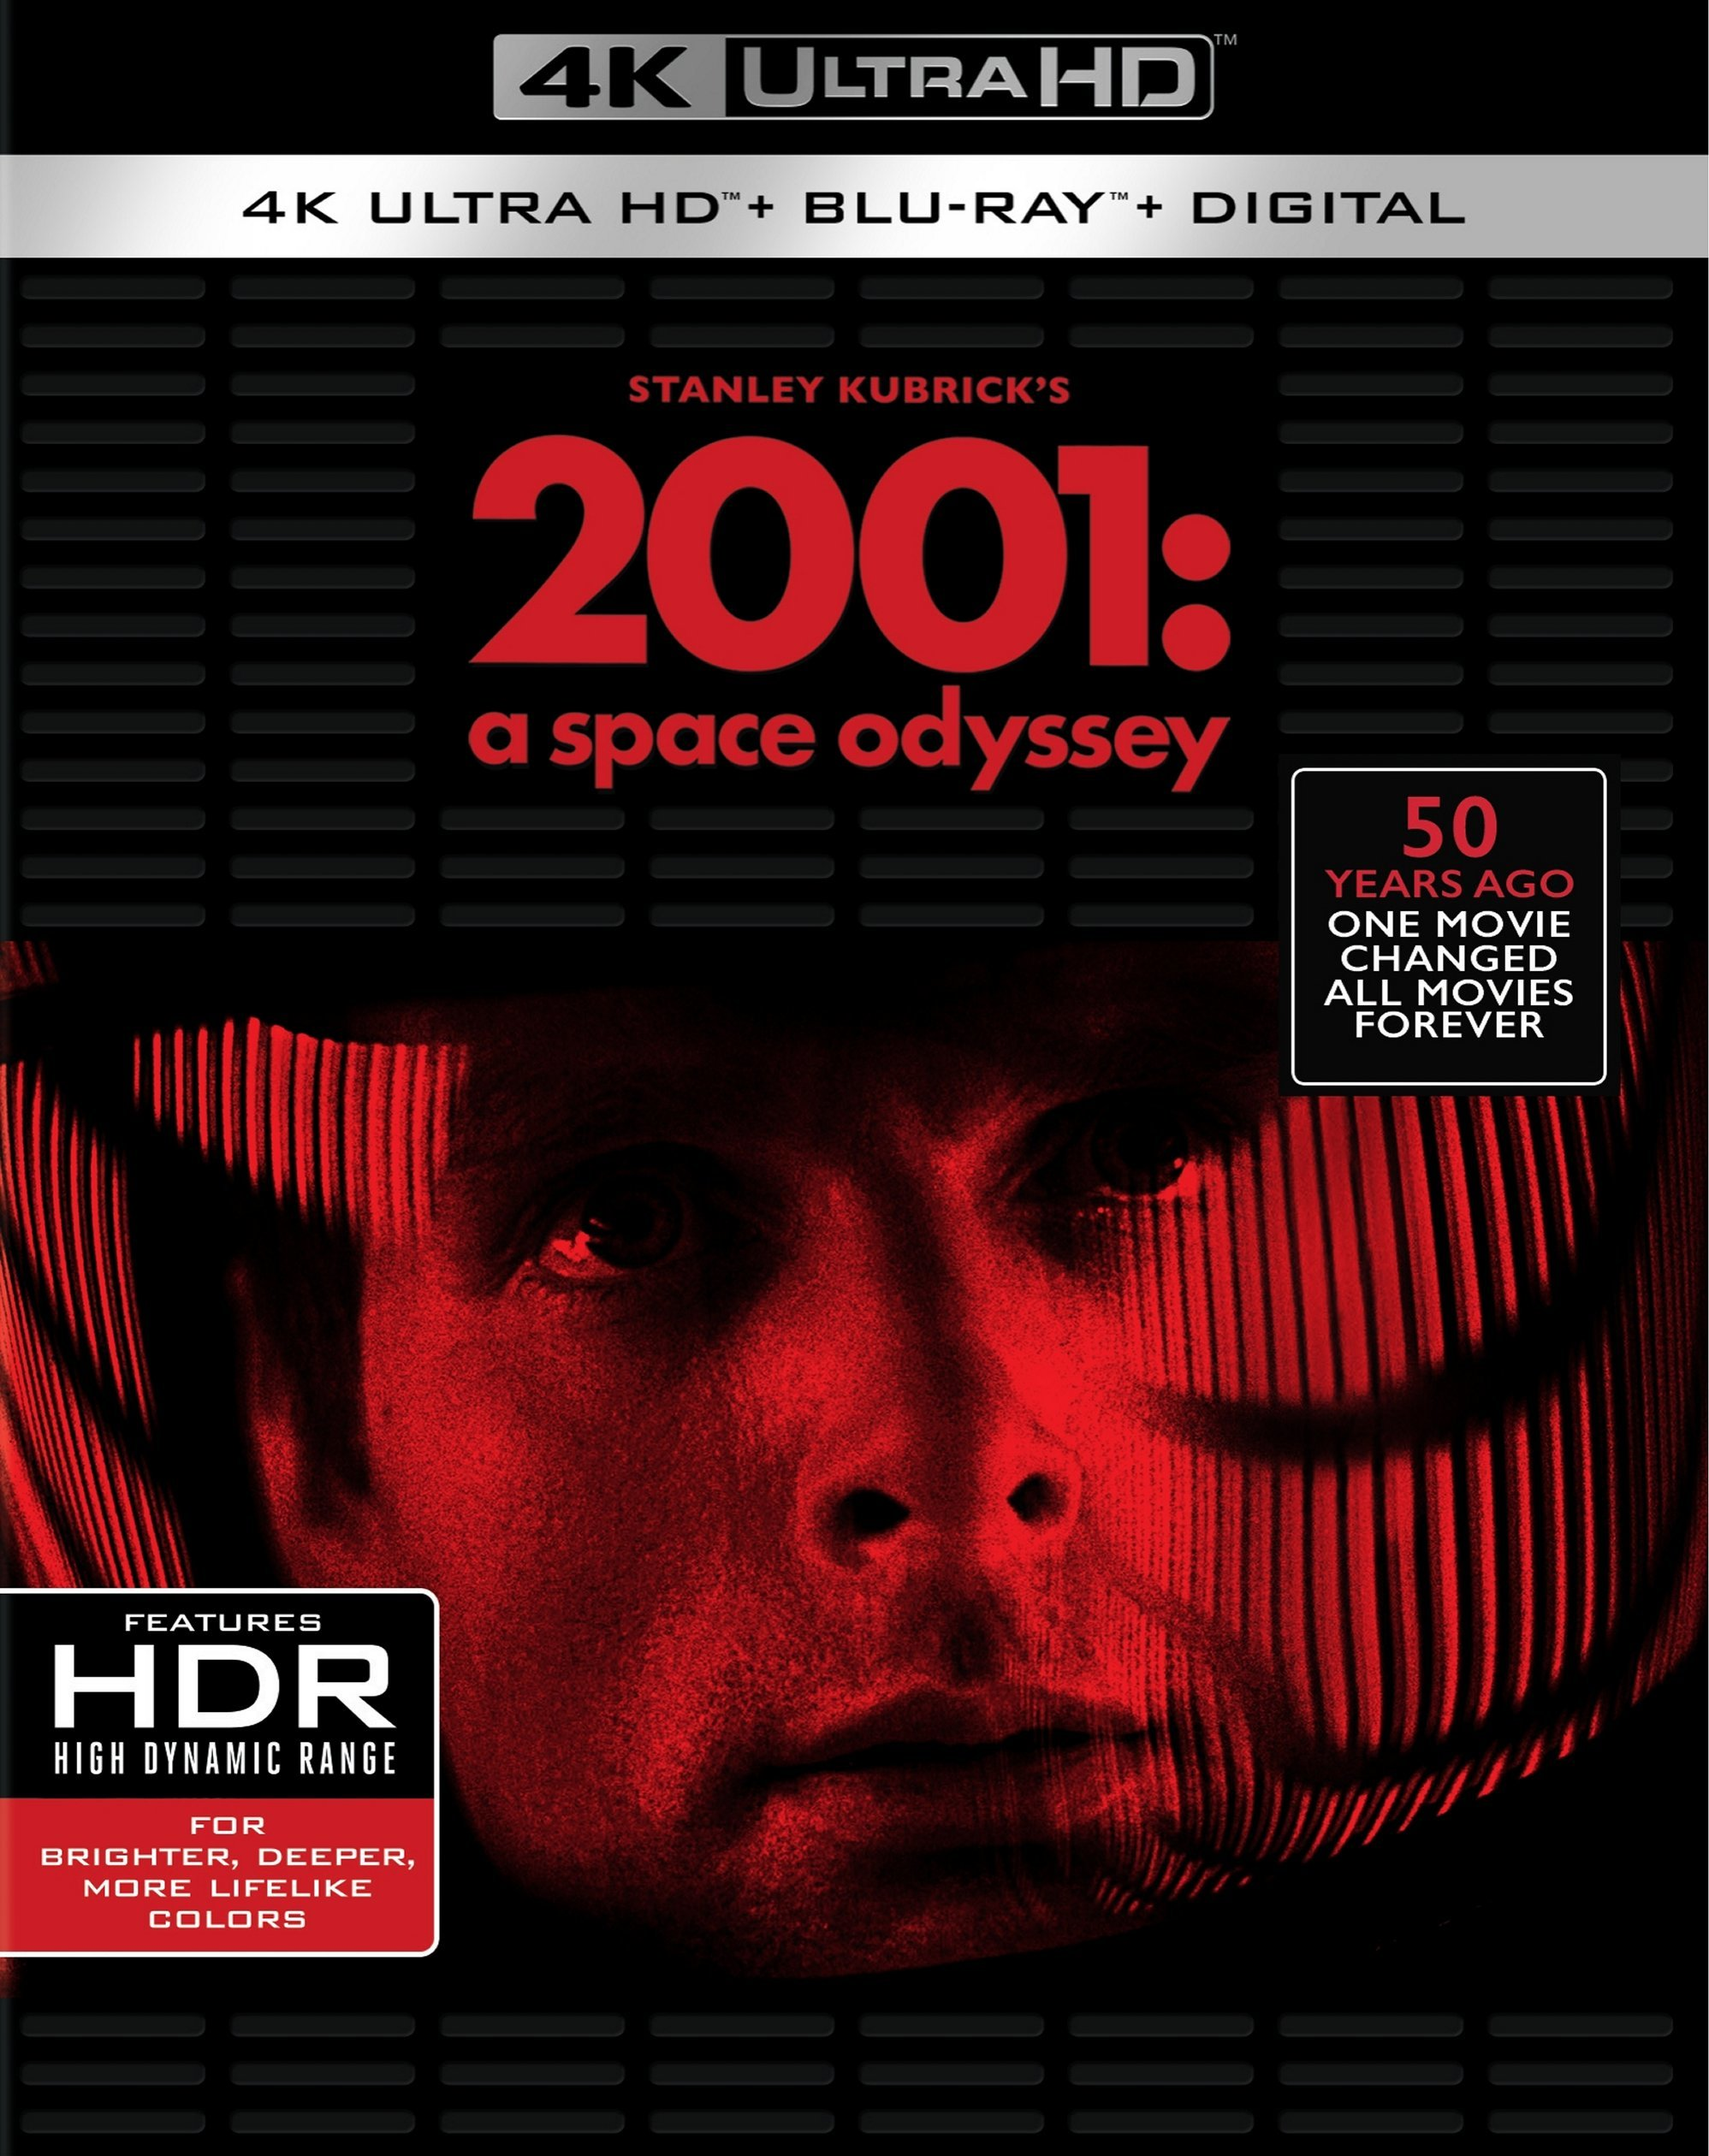 2001: A Space Odyssey (1968) poster image